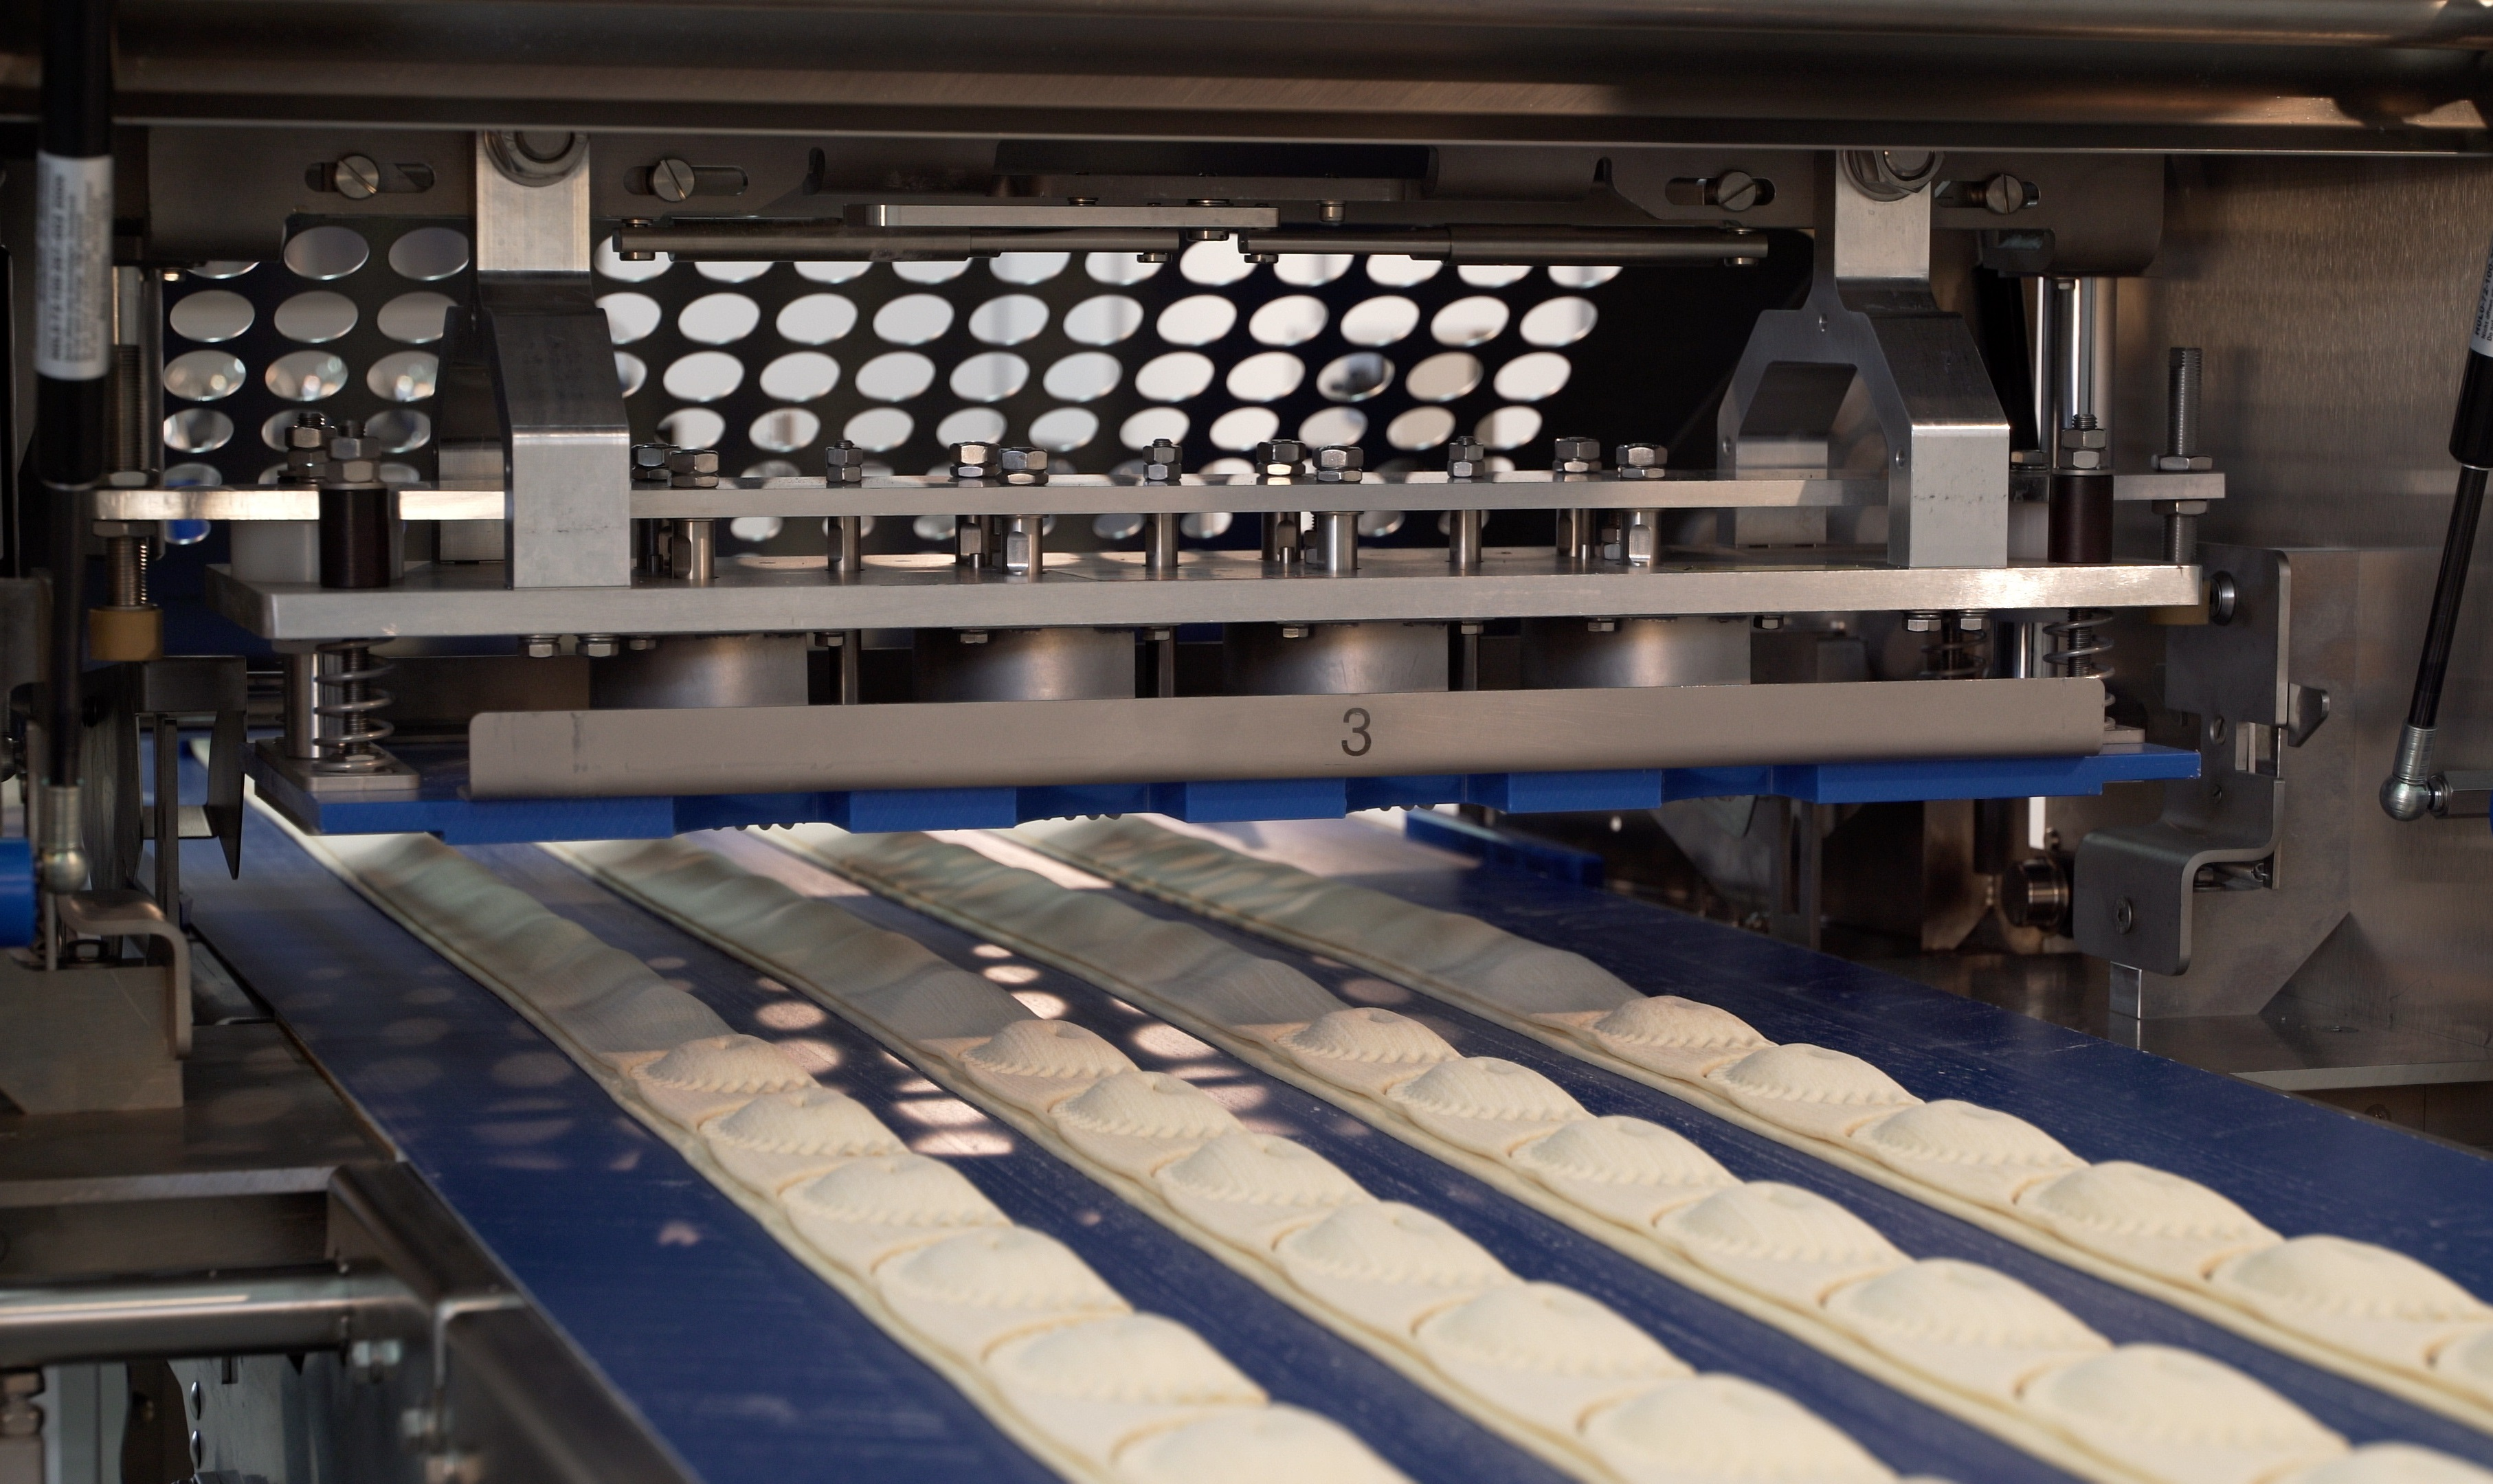 FRITSCH-bakery-machines-pastry-make-up-line-EASYLINE-motoric-driven-guillotine